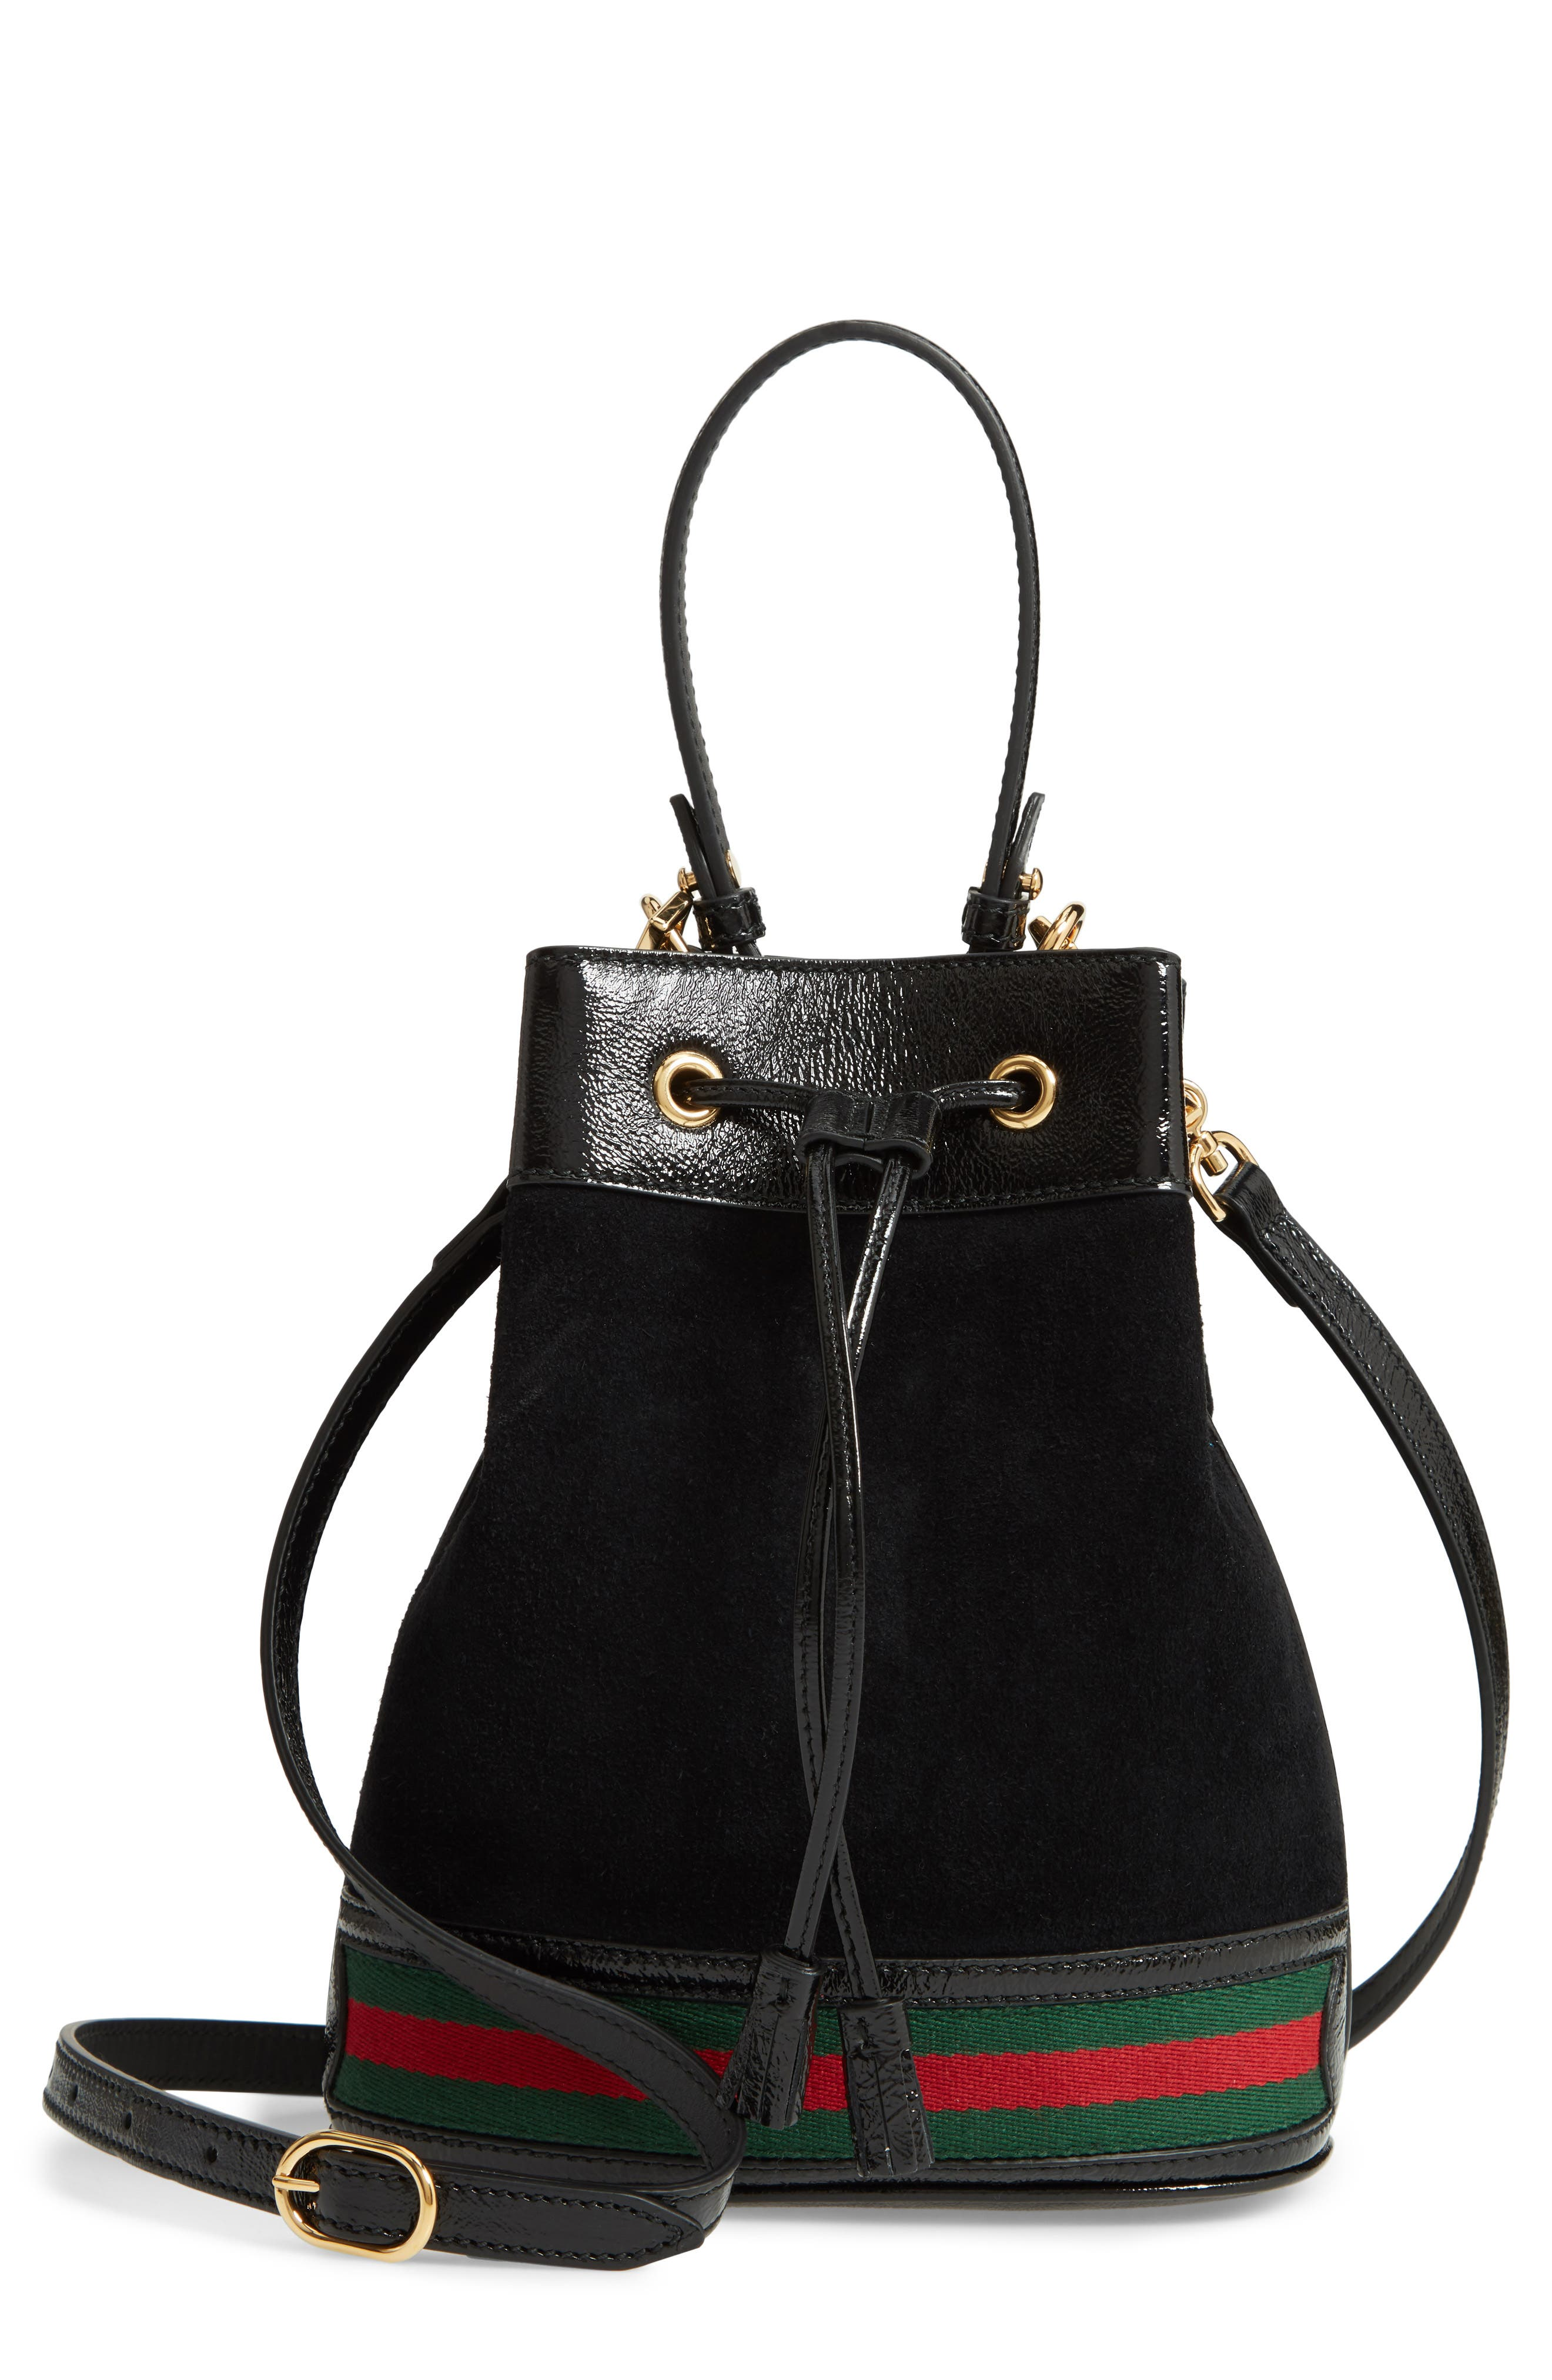 Small Ophidia Suede & Leather Bucket Bag,                             Main thumbnail 1, color,                             NERO/ VERT/ RED